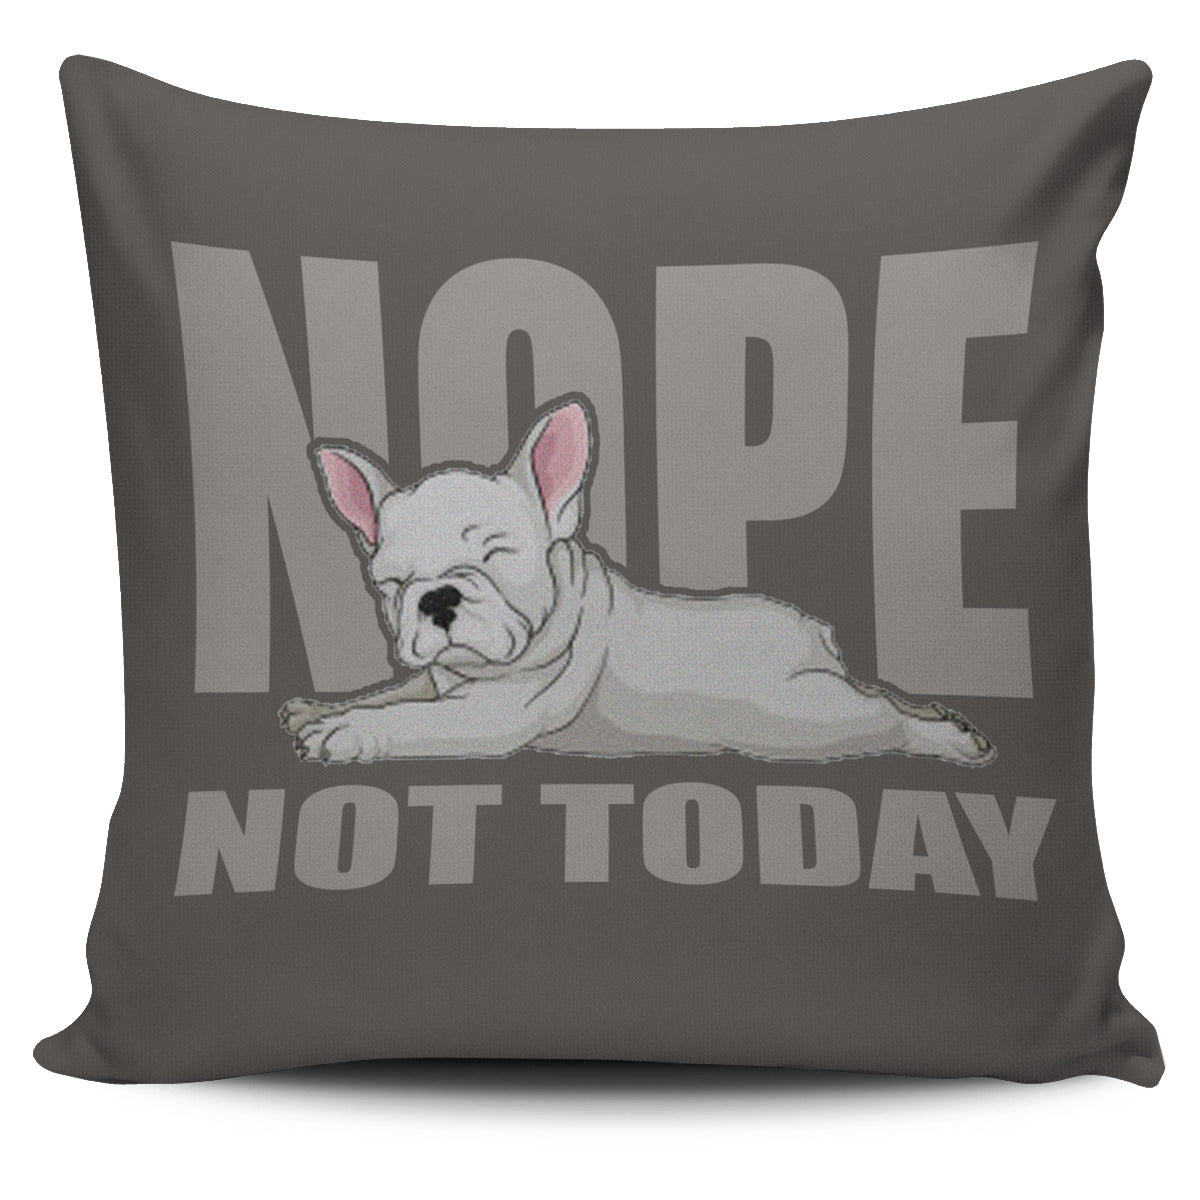 Daisy French Bulldog Pillow - Frenchie Bulldog Shop